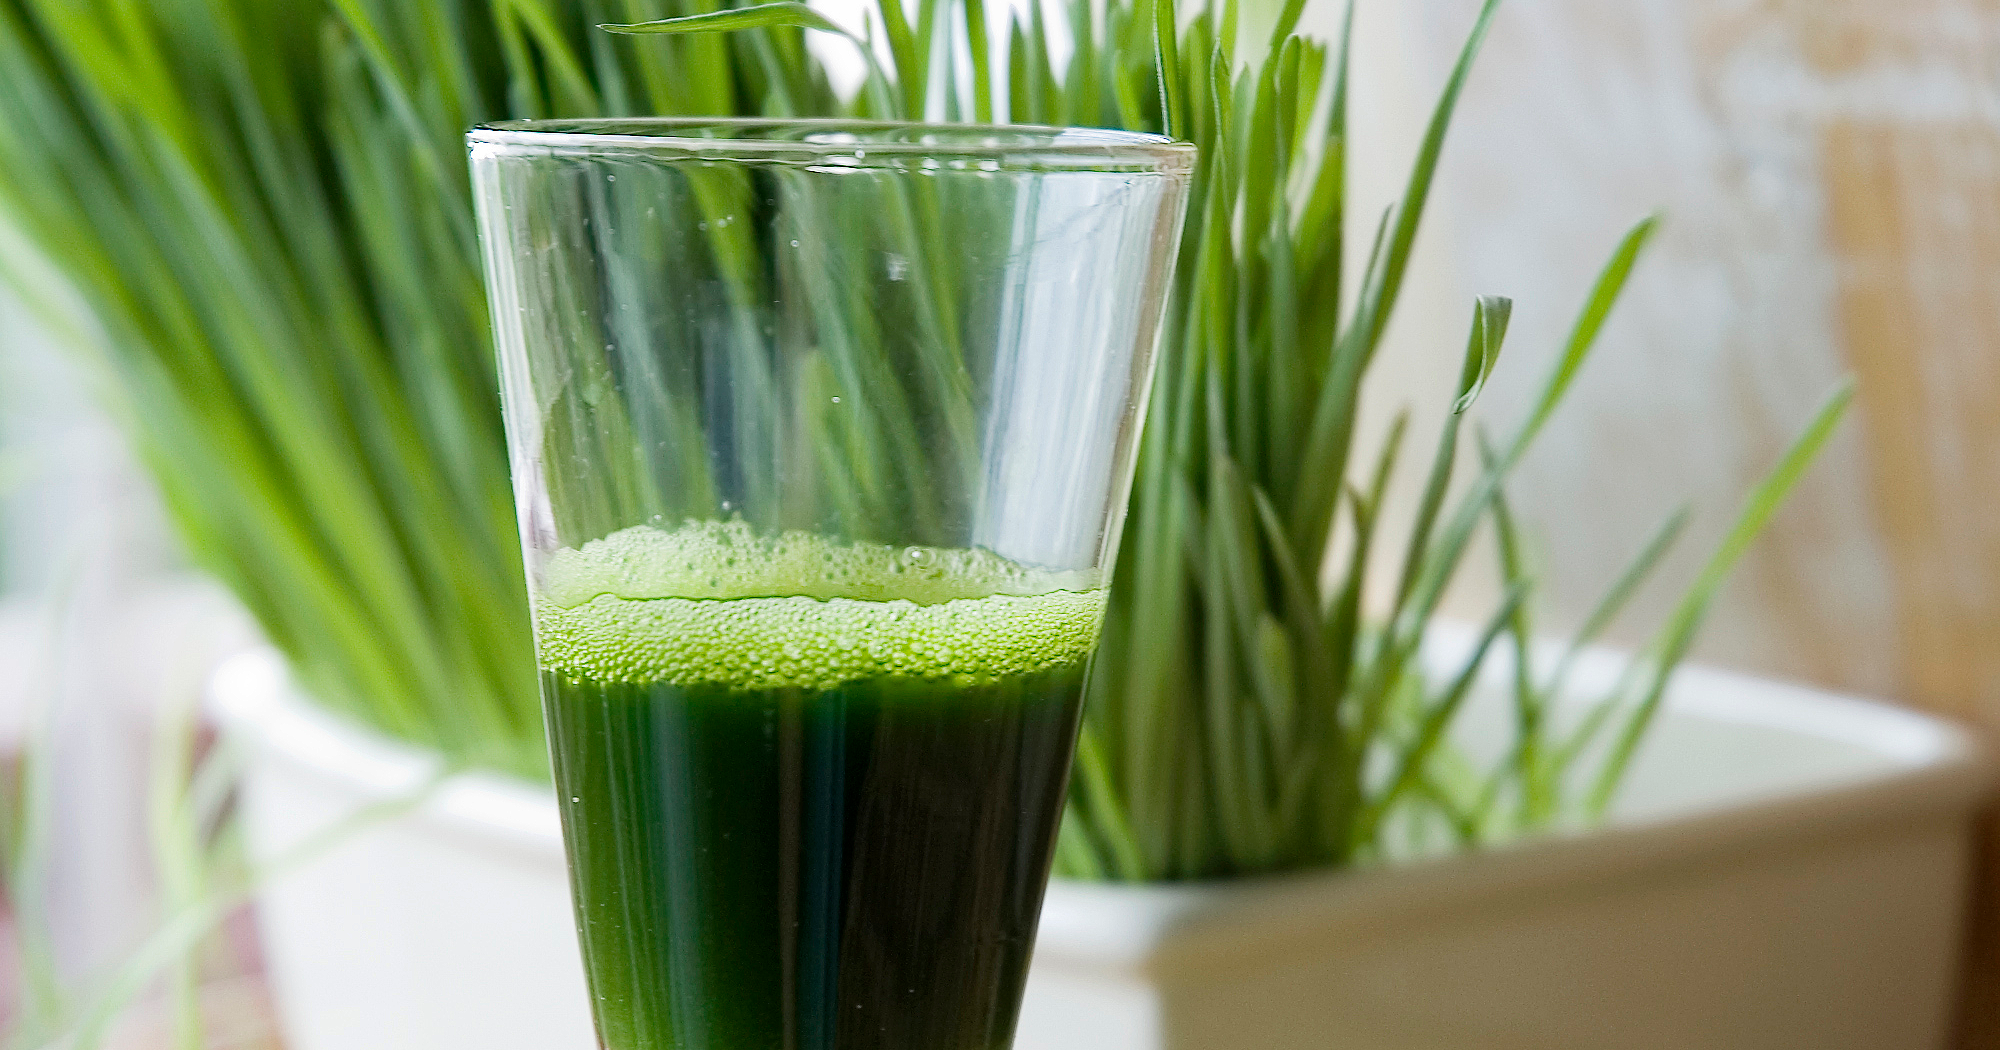 how to know wheatgrass poeder is spoiled